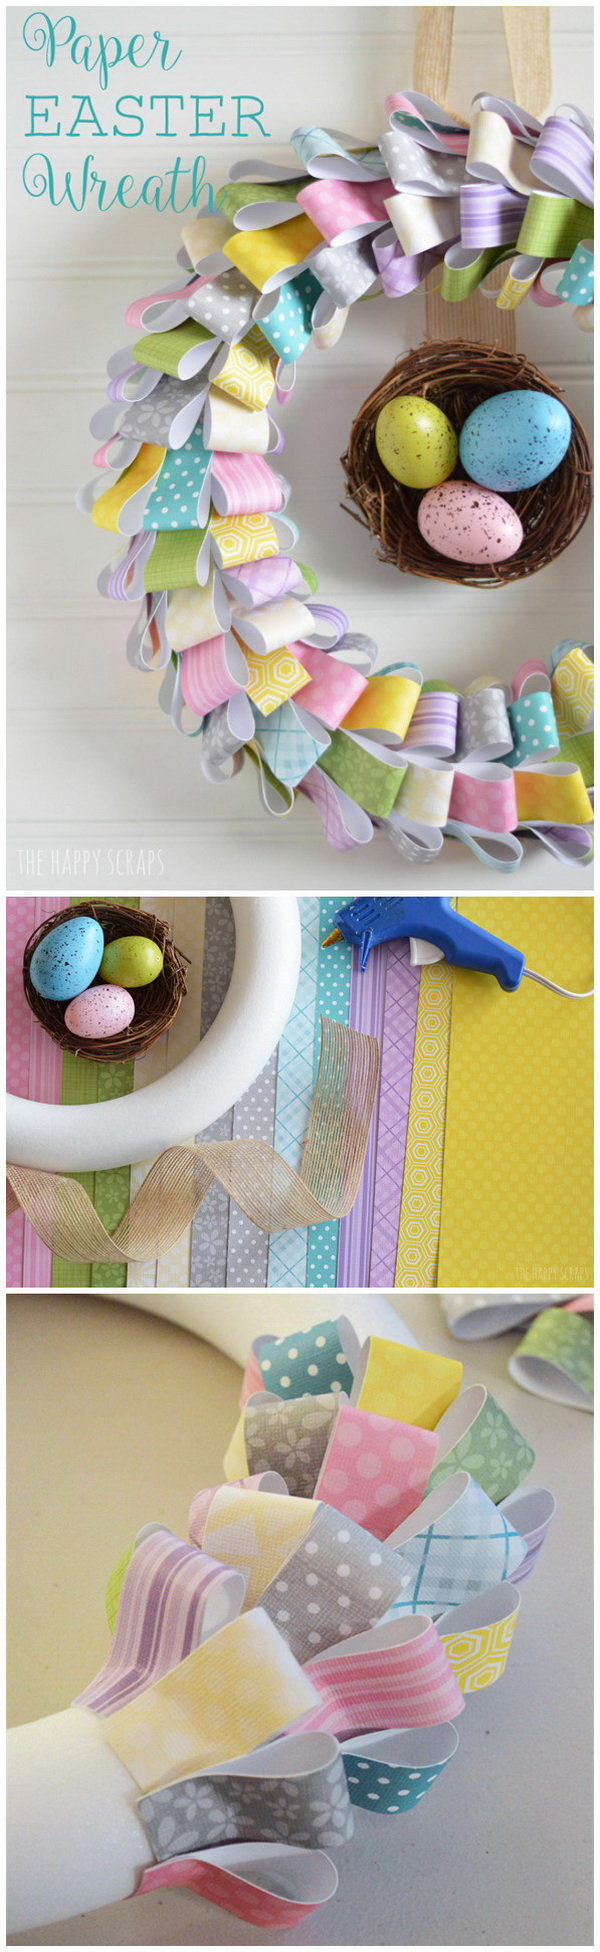 DIY Easter Wreath Ideas: Paper Easter Wreath.